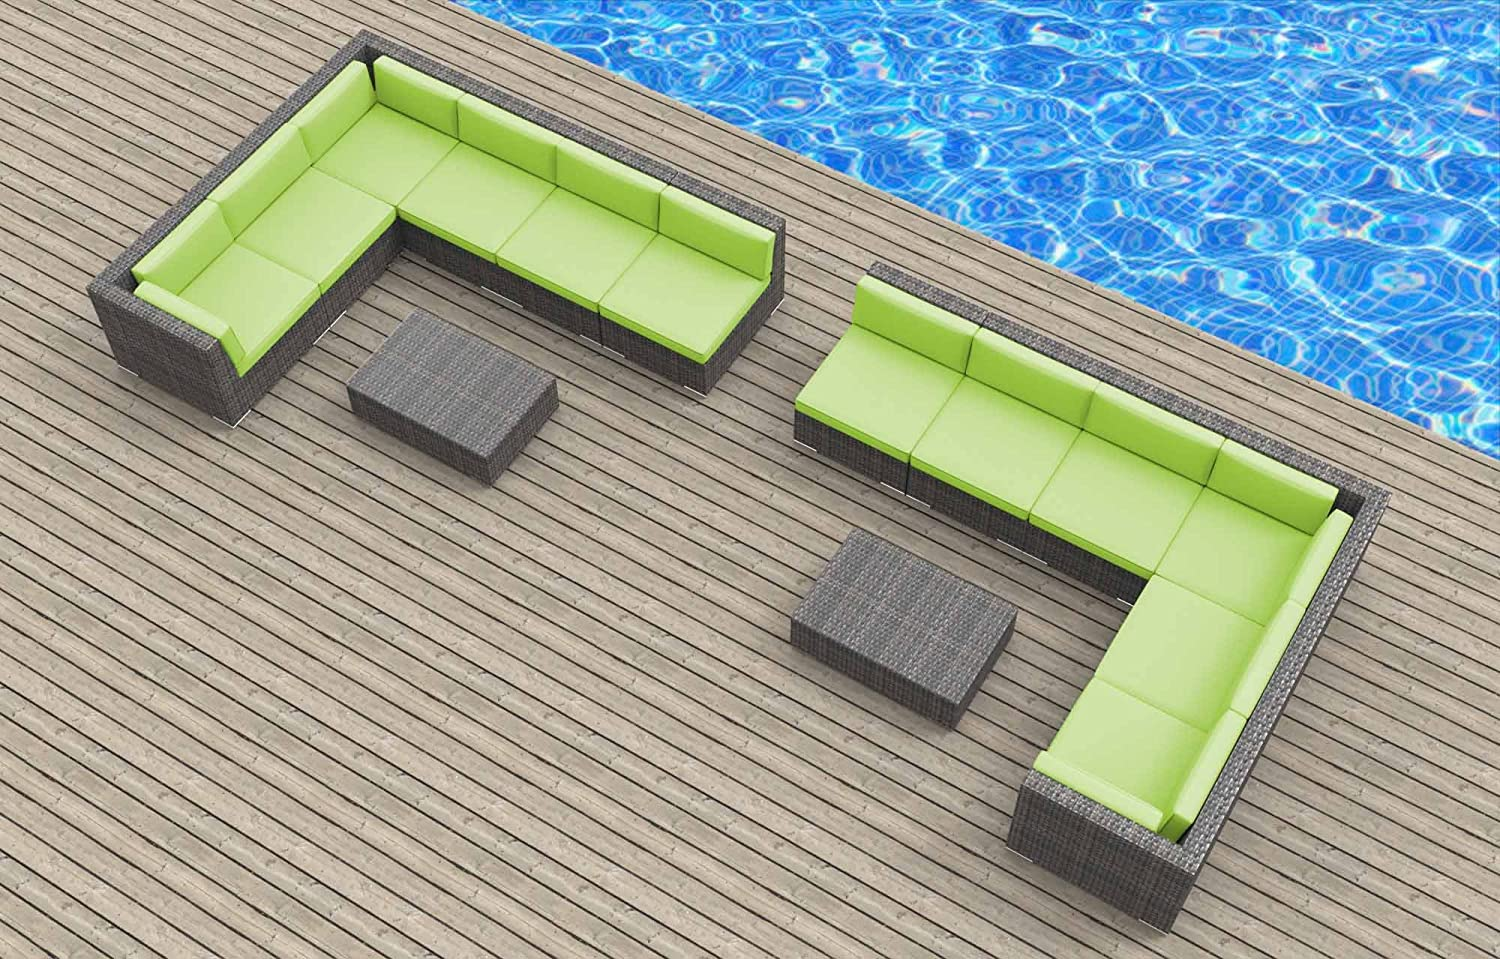 www.urbanfurnishing.net Urban Furnishing - La Jolla 14pc Modern Outdoor Backyard Wicker Rattan Patio Furniture Sofa Sectional Couch Set - Lime Green at Sears.com